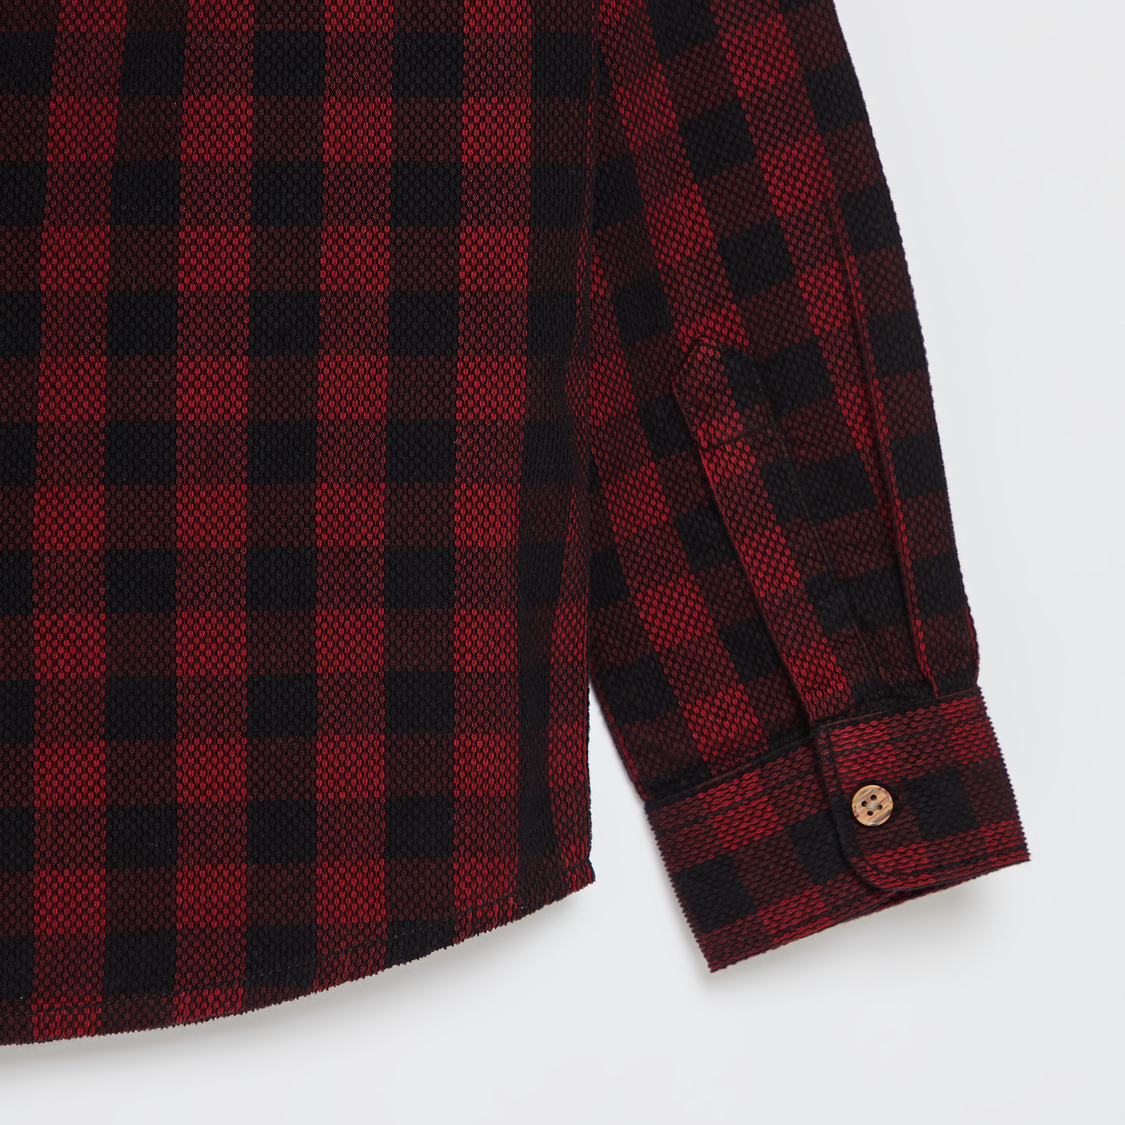 Chequered Shirt with Text Print and Long Sleeves